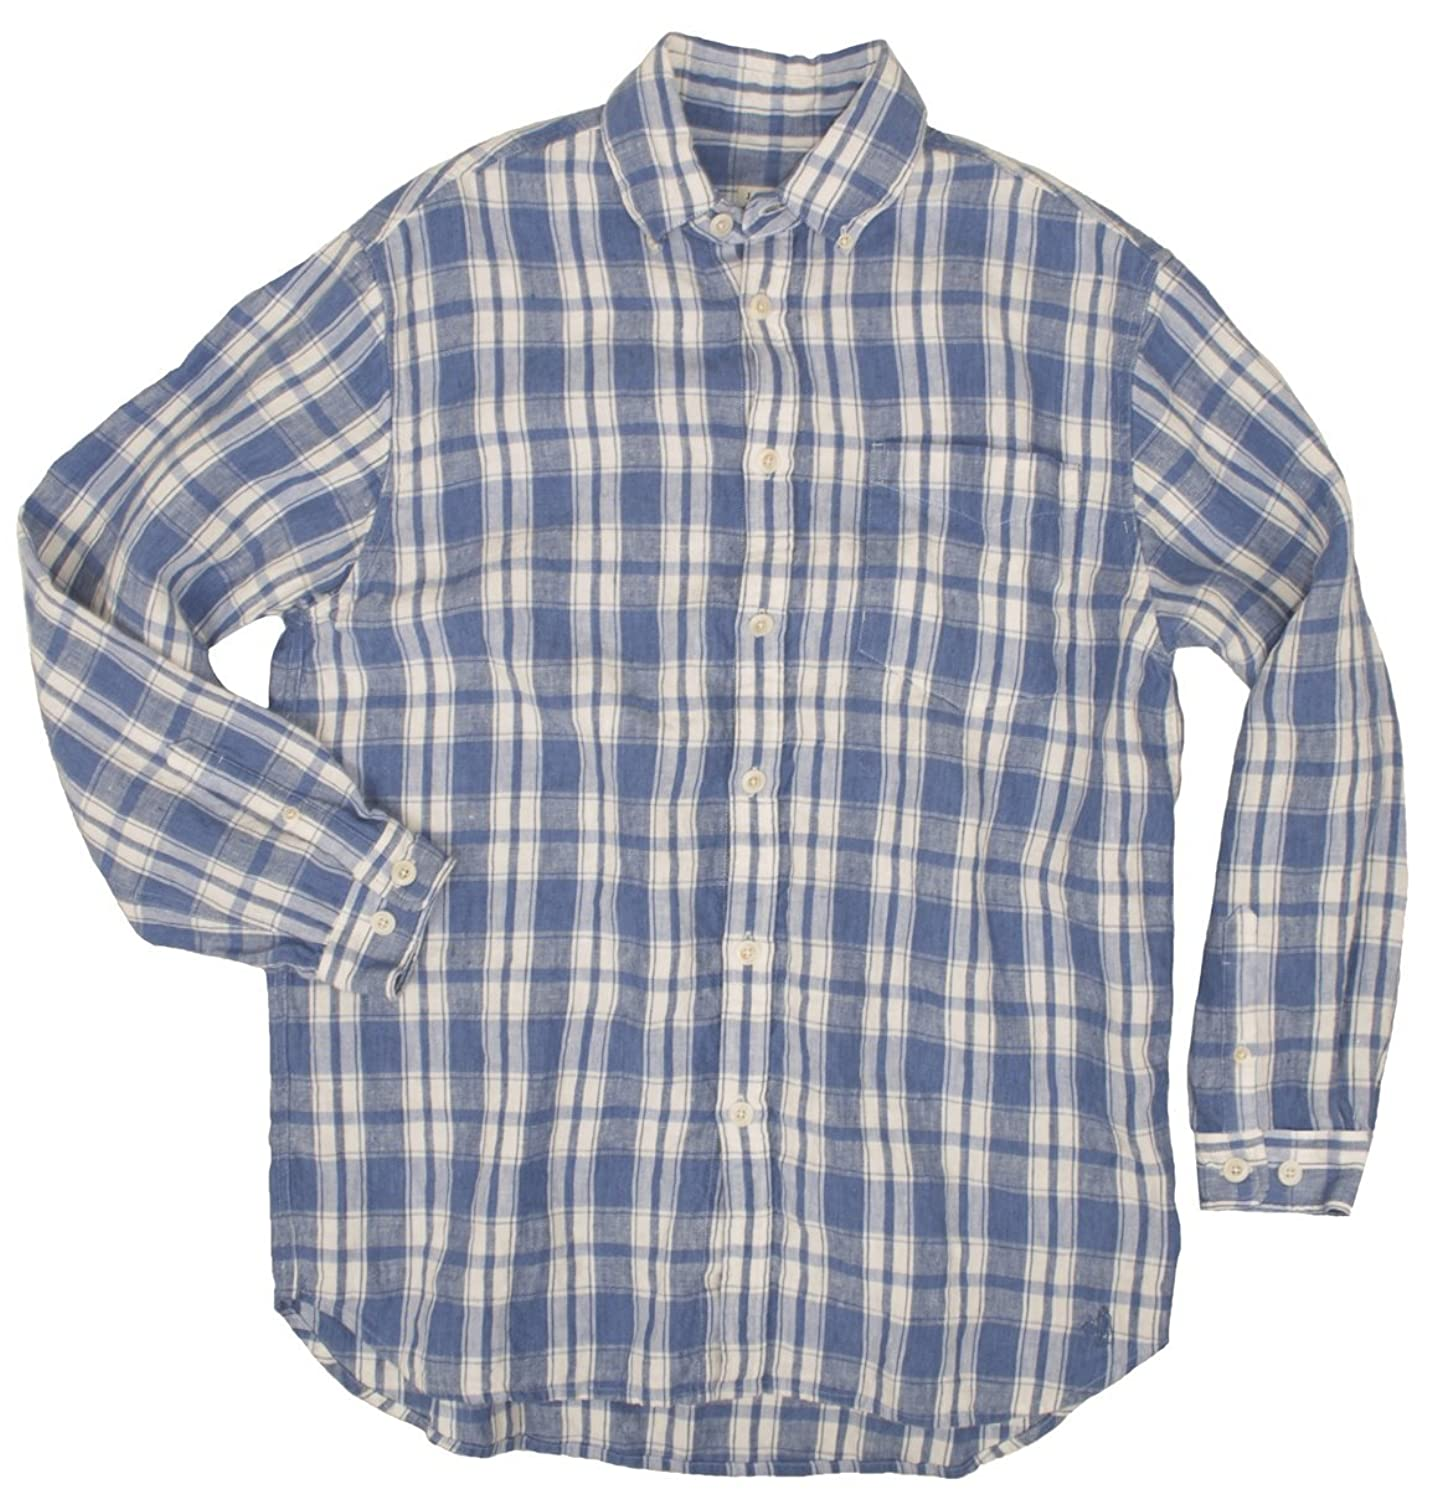 1920s Men's Dress Shirts Frontier Linen Plaid Shirt $159.85 AT vintagedancer.com